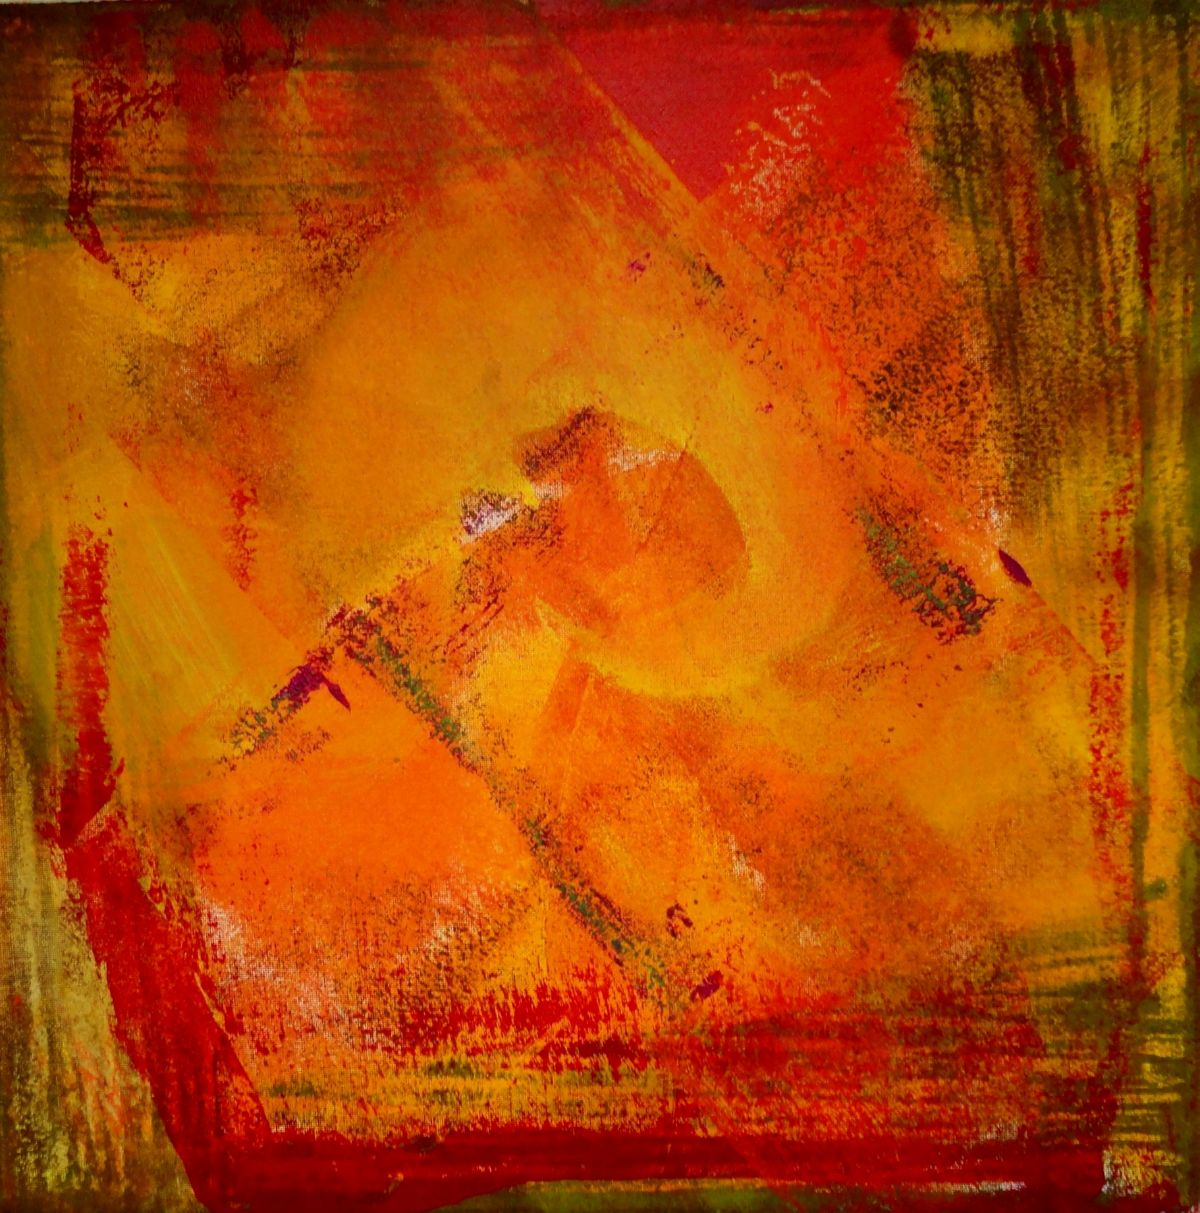 Uros Paternu 2013 Untitled 01 artwork by Uros Paternu - art listed for sale on Artplode